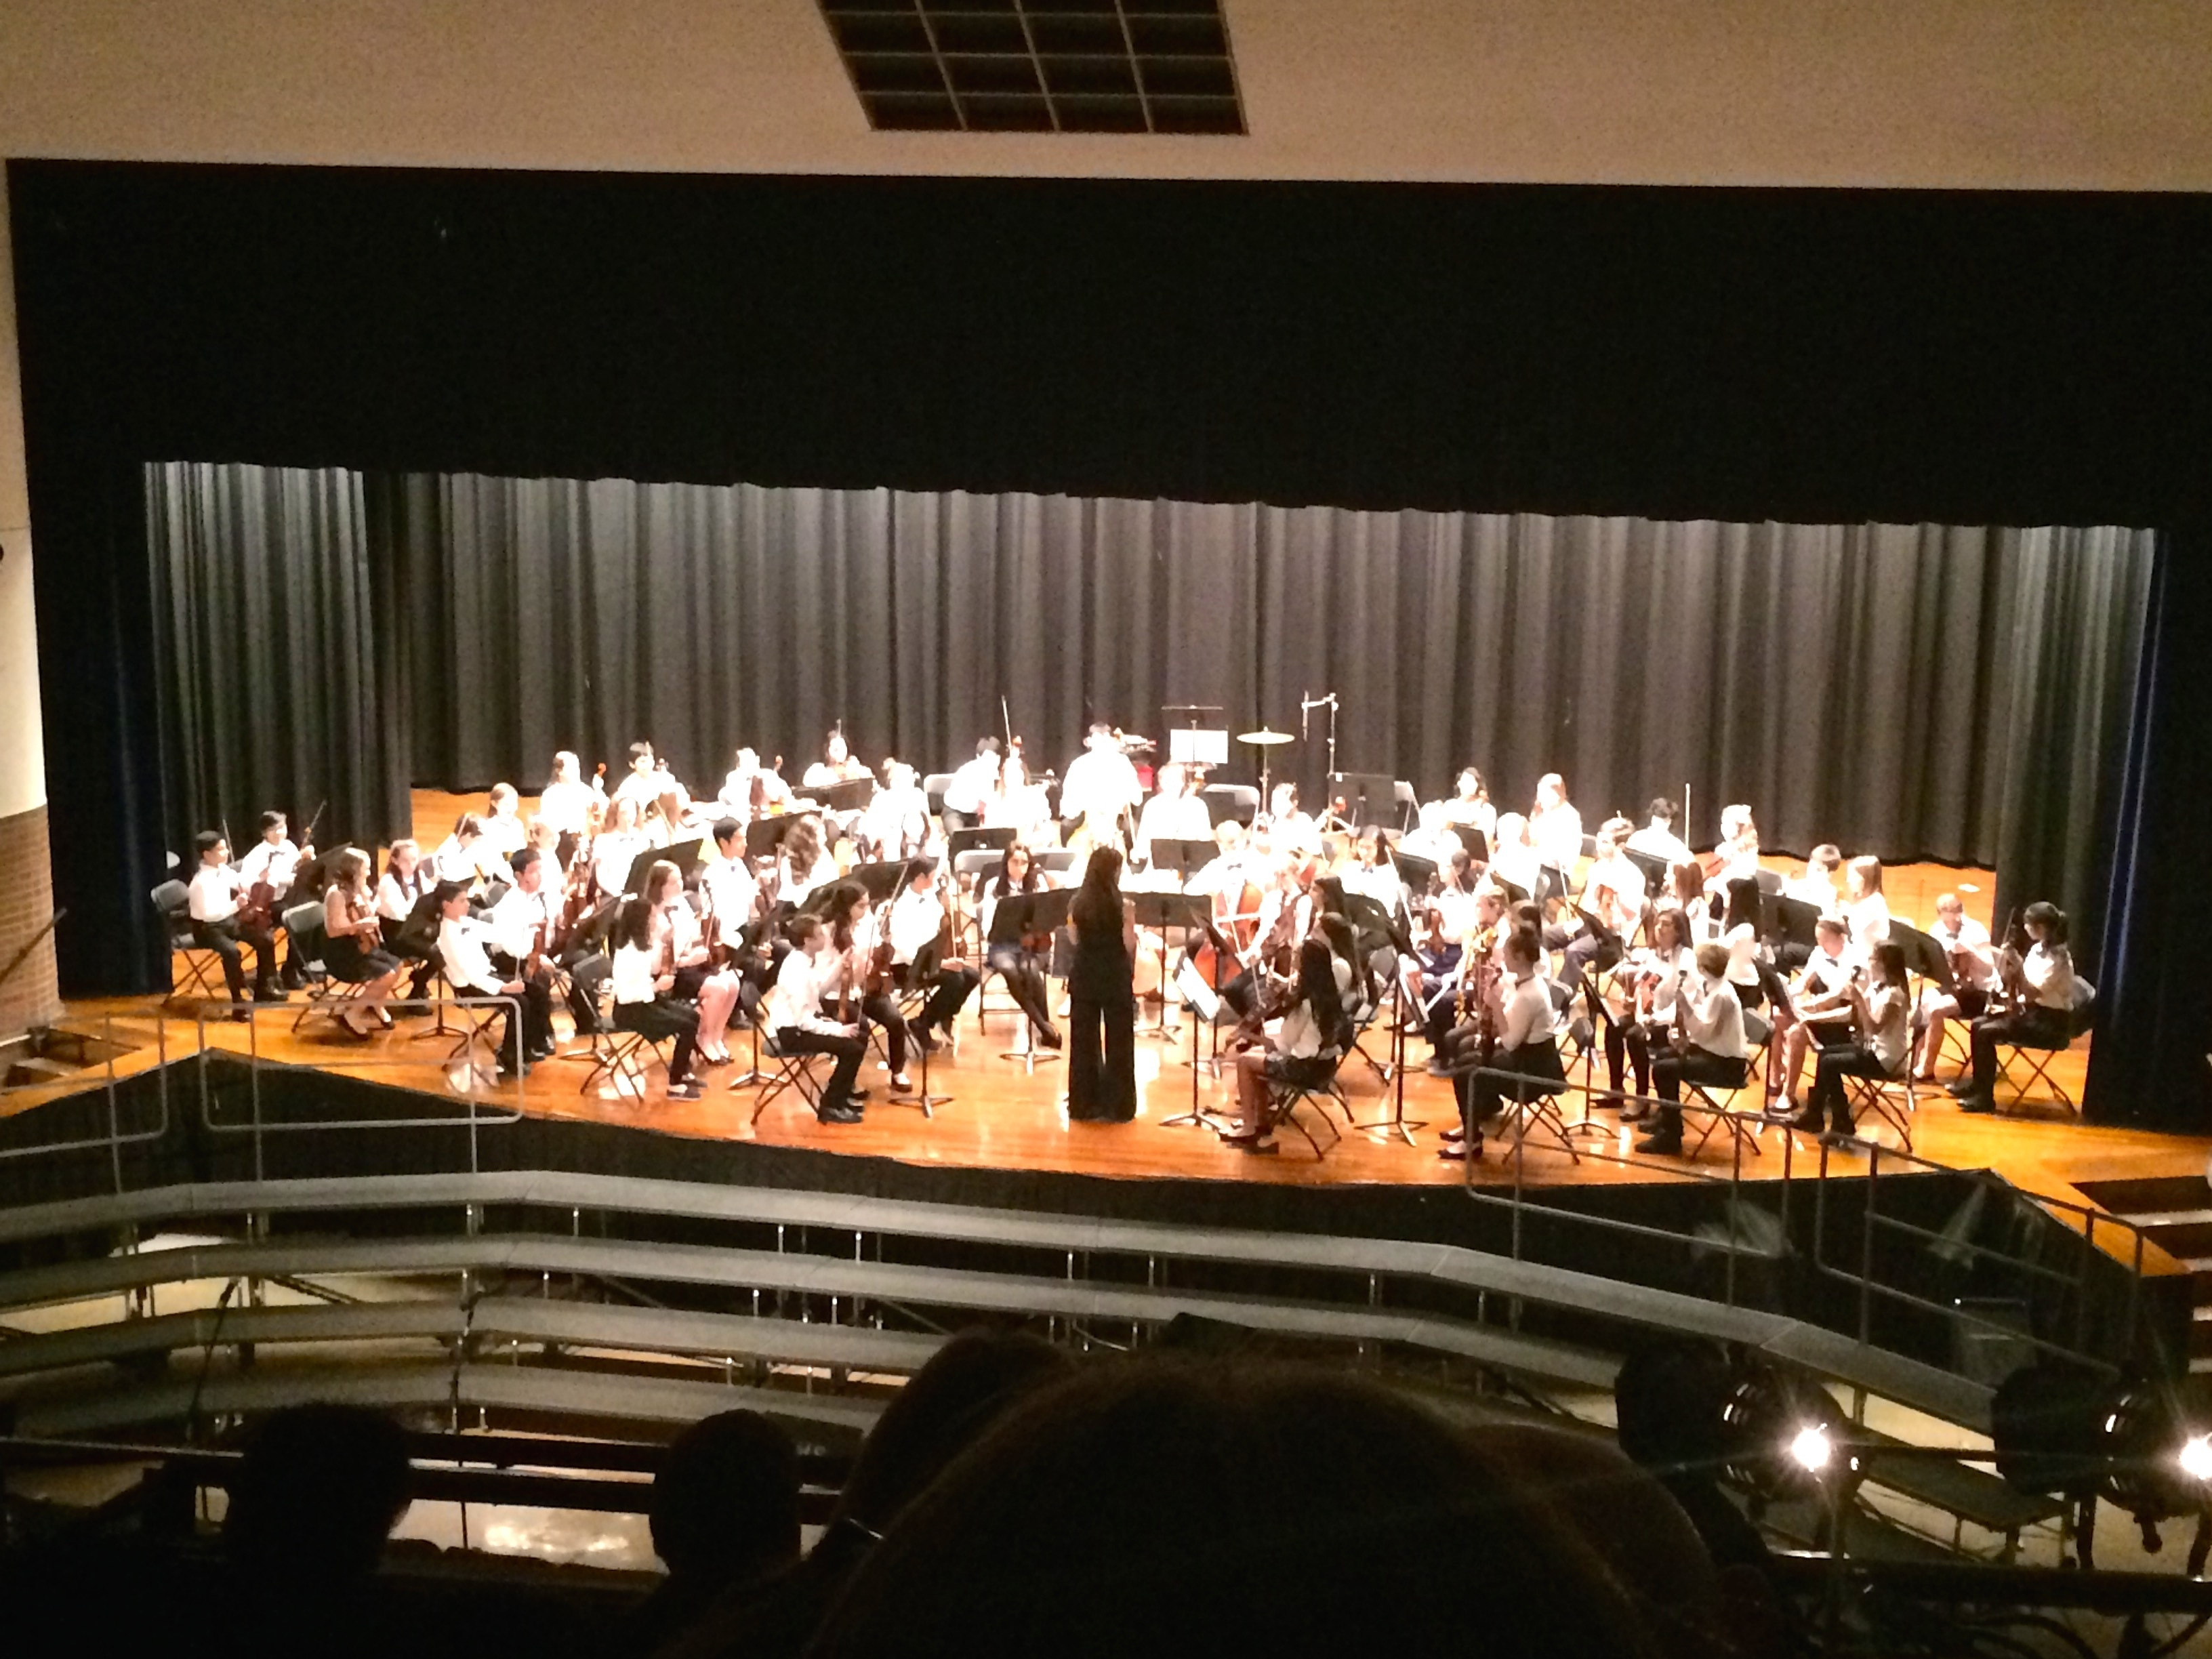 41b11c0514ee1ad2c045_0af5a200d13ebaf9791f_Director_Suzanne_Bass_leads_the_CMS_7_8_Orchestra.jpg